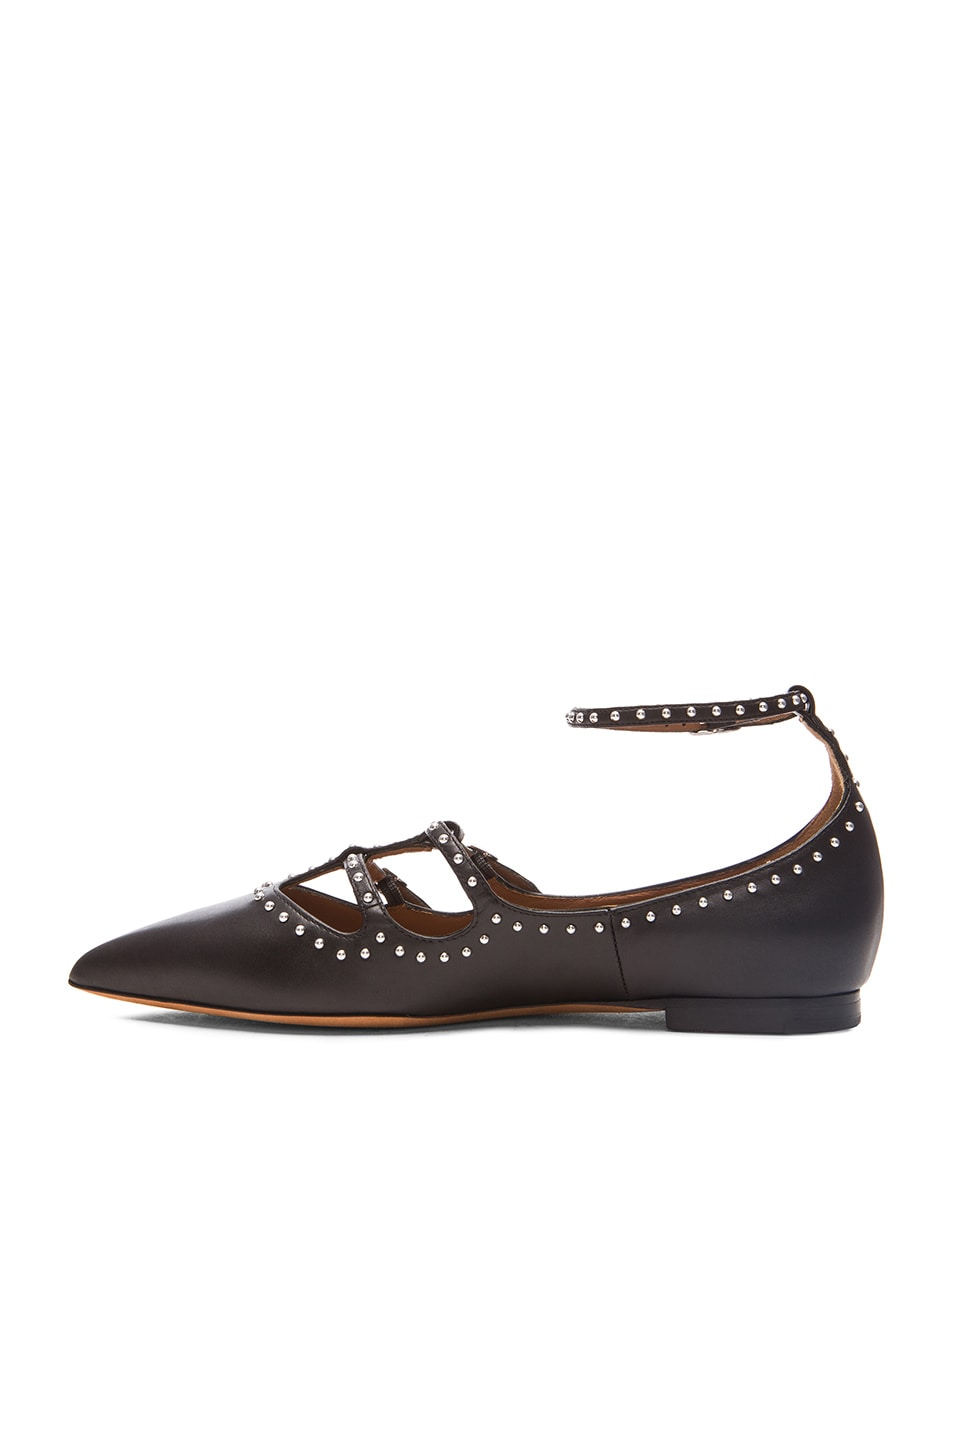 Givenchy Leather Studded Flats store with big discount sale 2015 VkpyCXNRfR